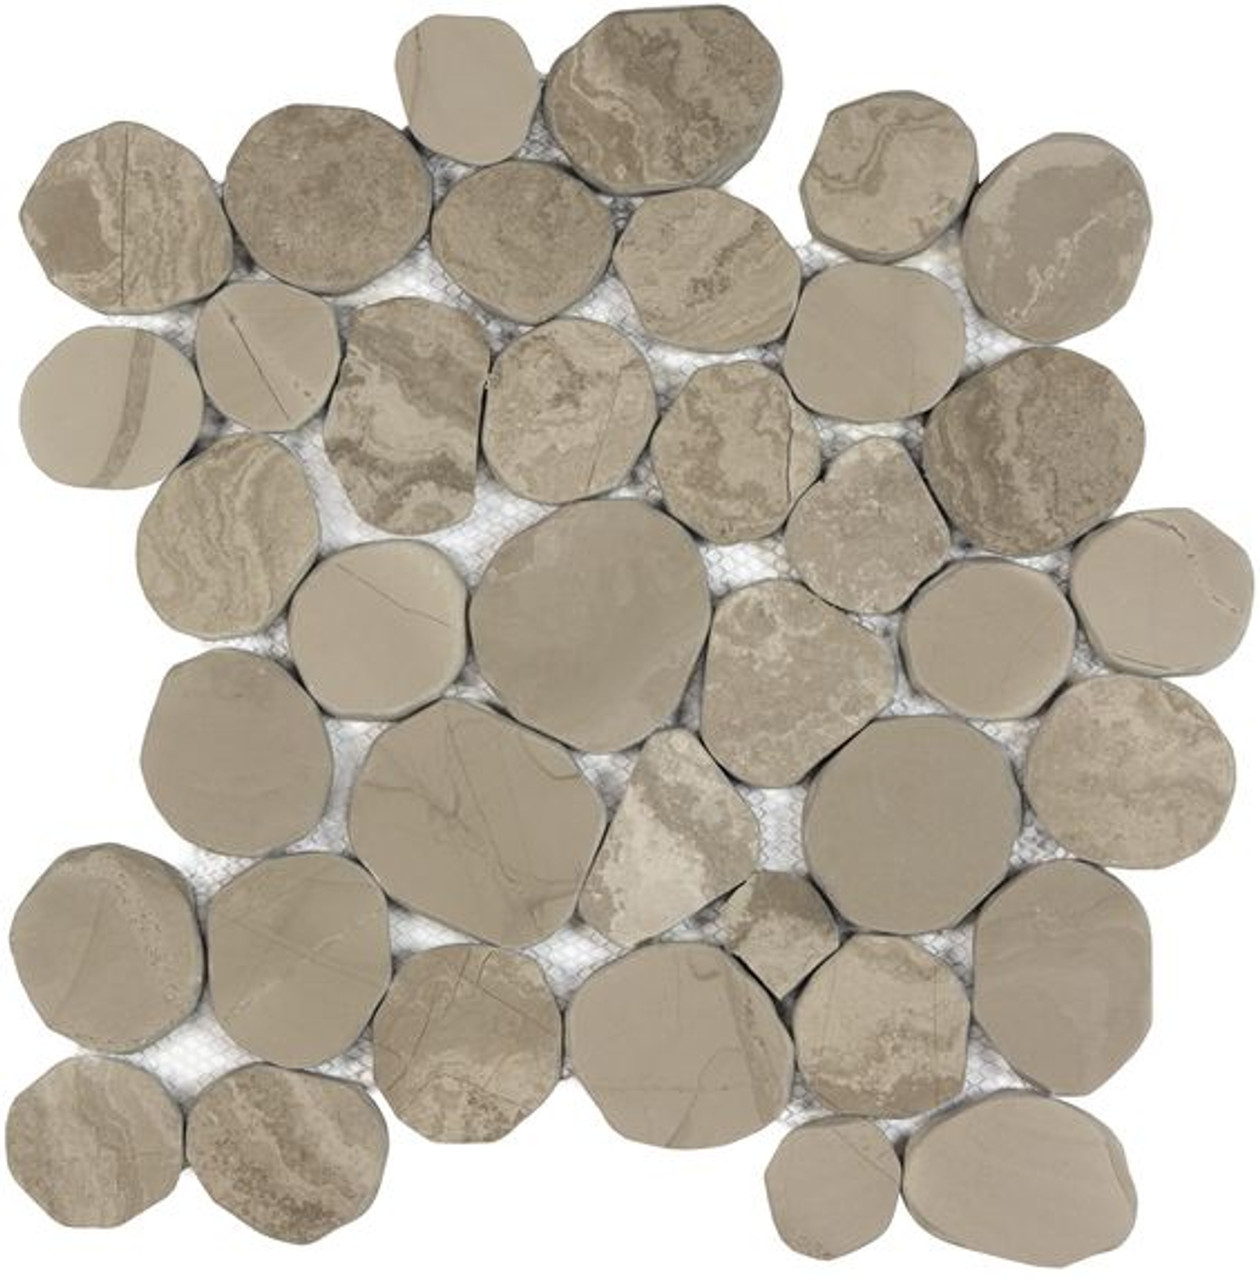 Spellbinder Pebble Mosaic Natural Stone Marble Tile | Sold by the Tile